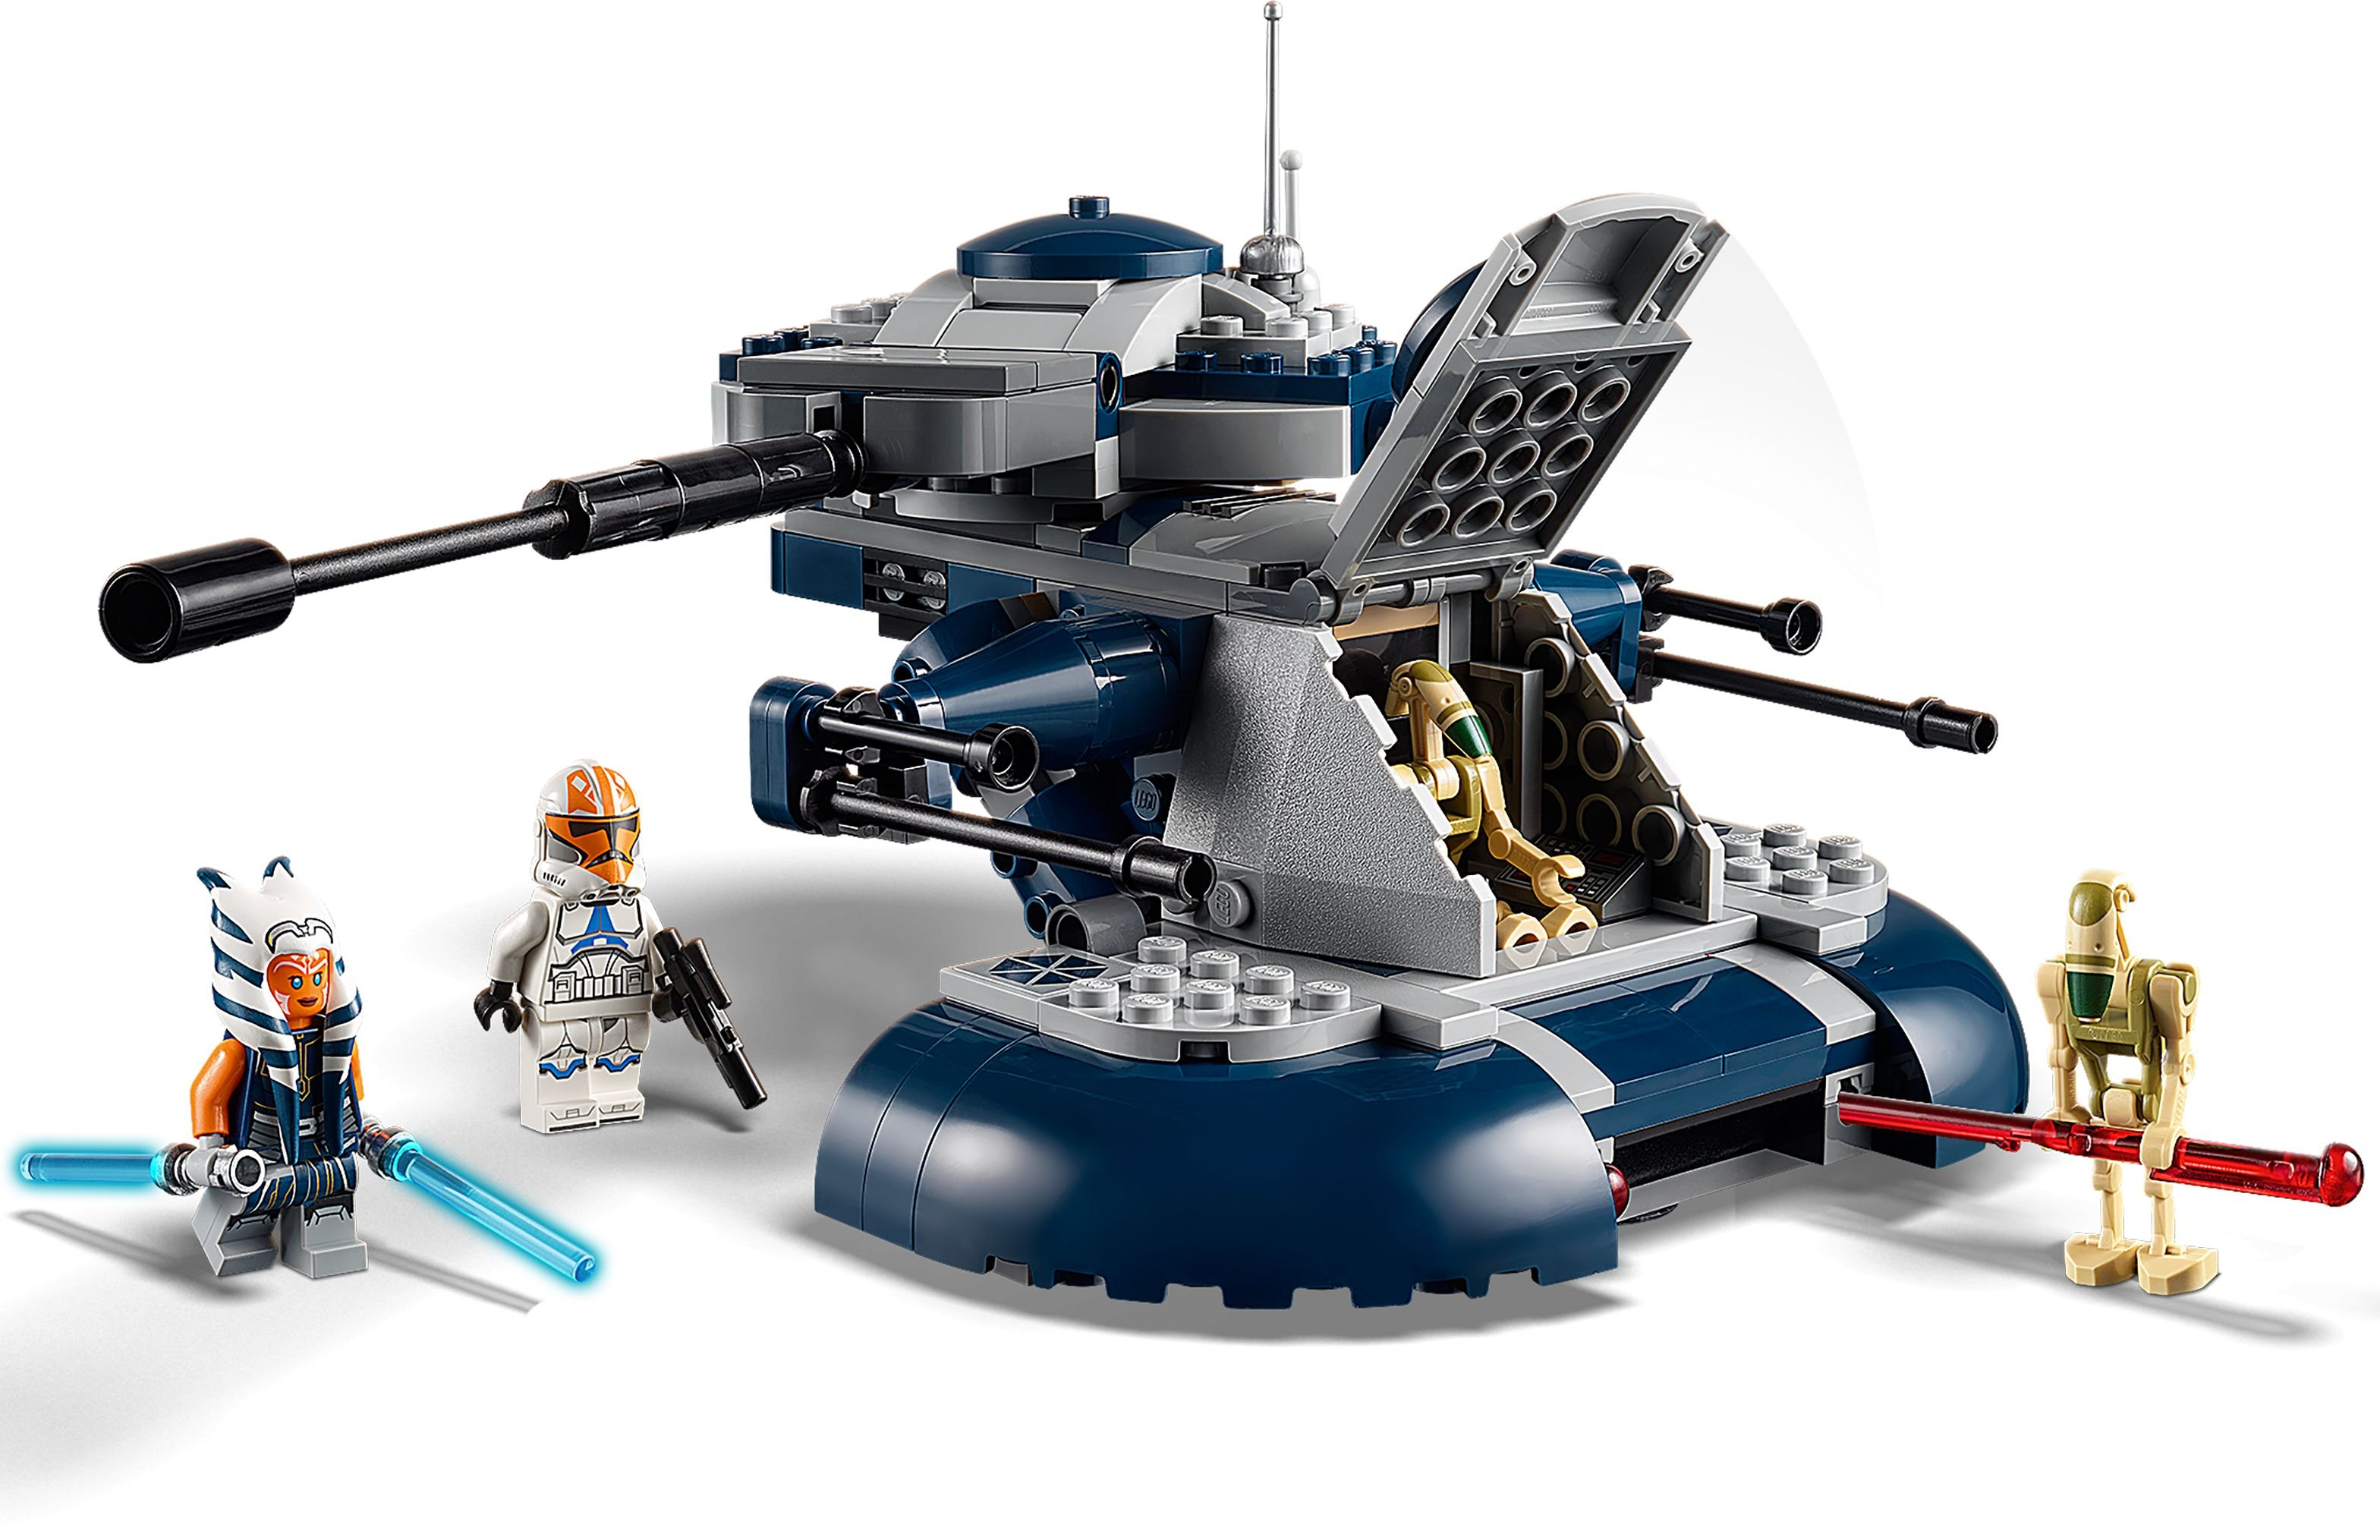 LEGO Star Wars 75283 Armored Assault Tank (AAT™) LEGO_75283_alt4.jpg